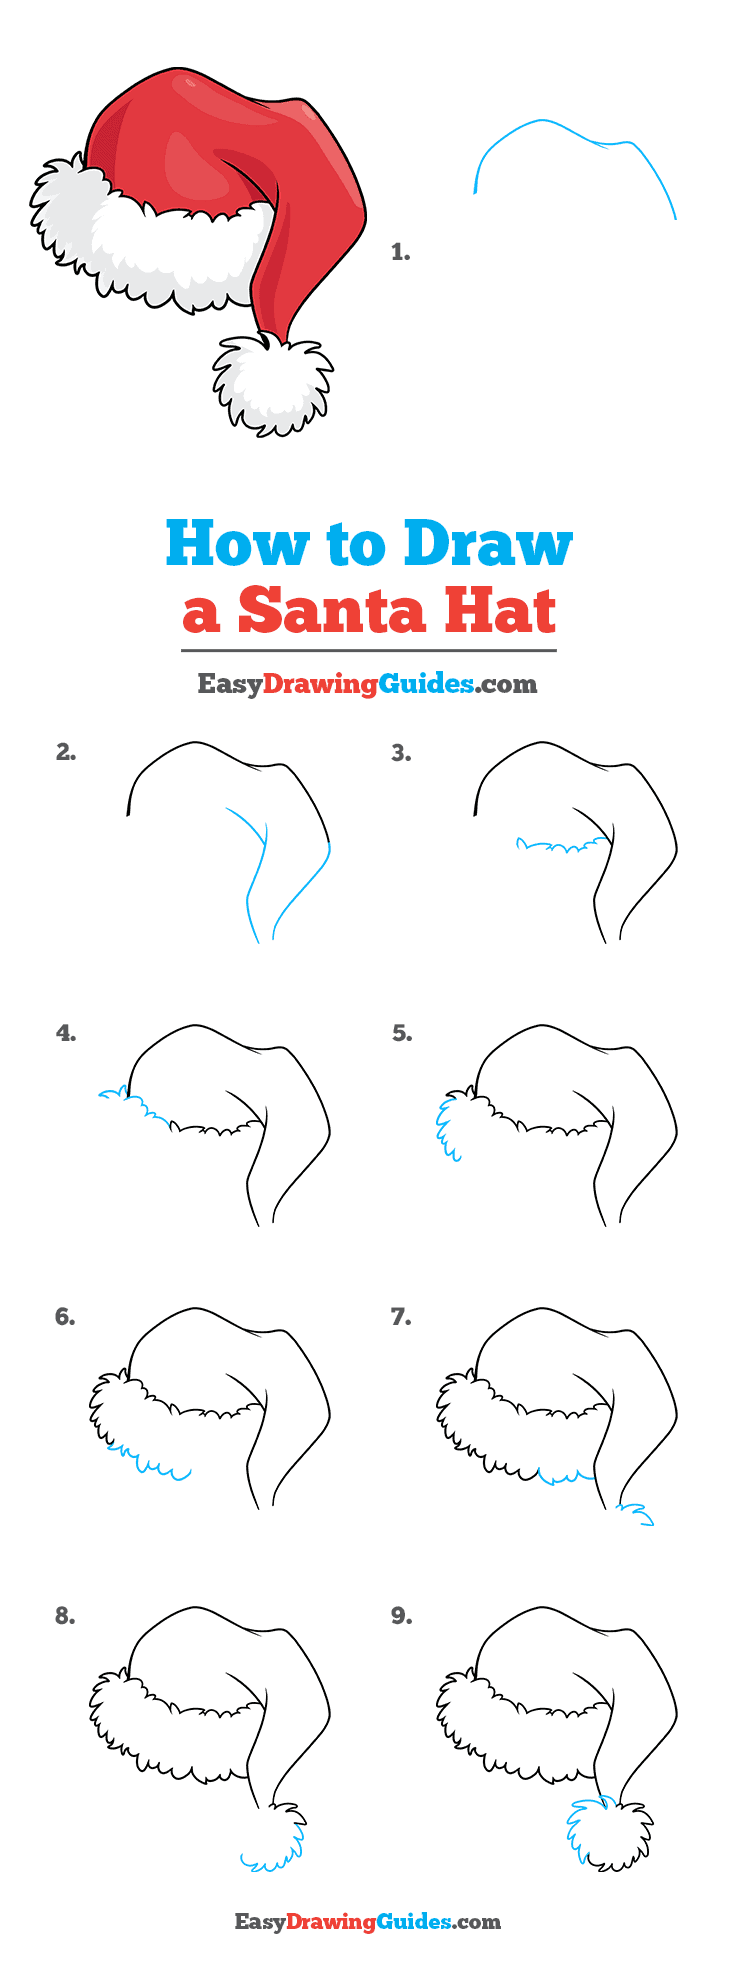 How to Draw a Santa Hat Step by Step Tutorial Image